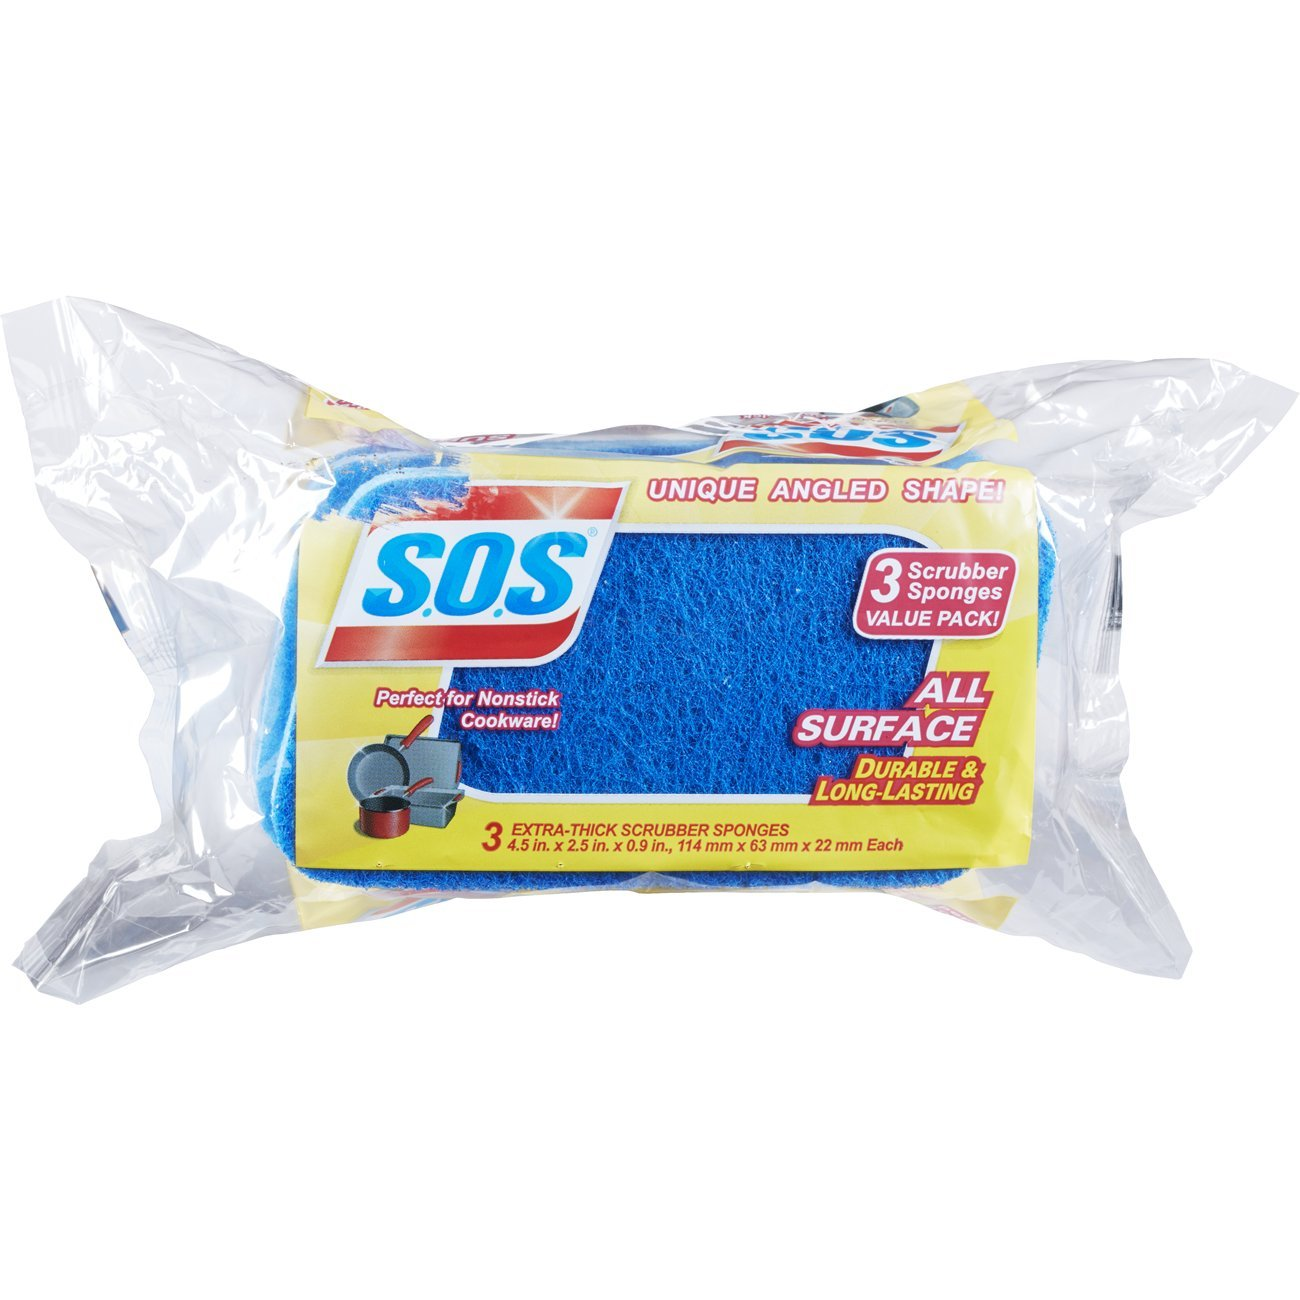 S.O.S All Surface Scrubber Sponge, 3 Count